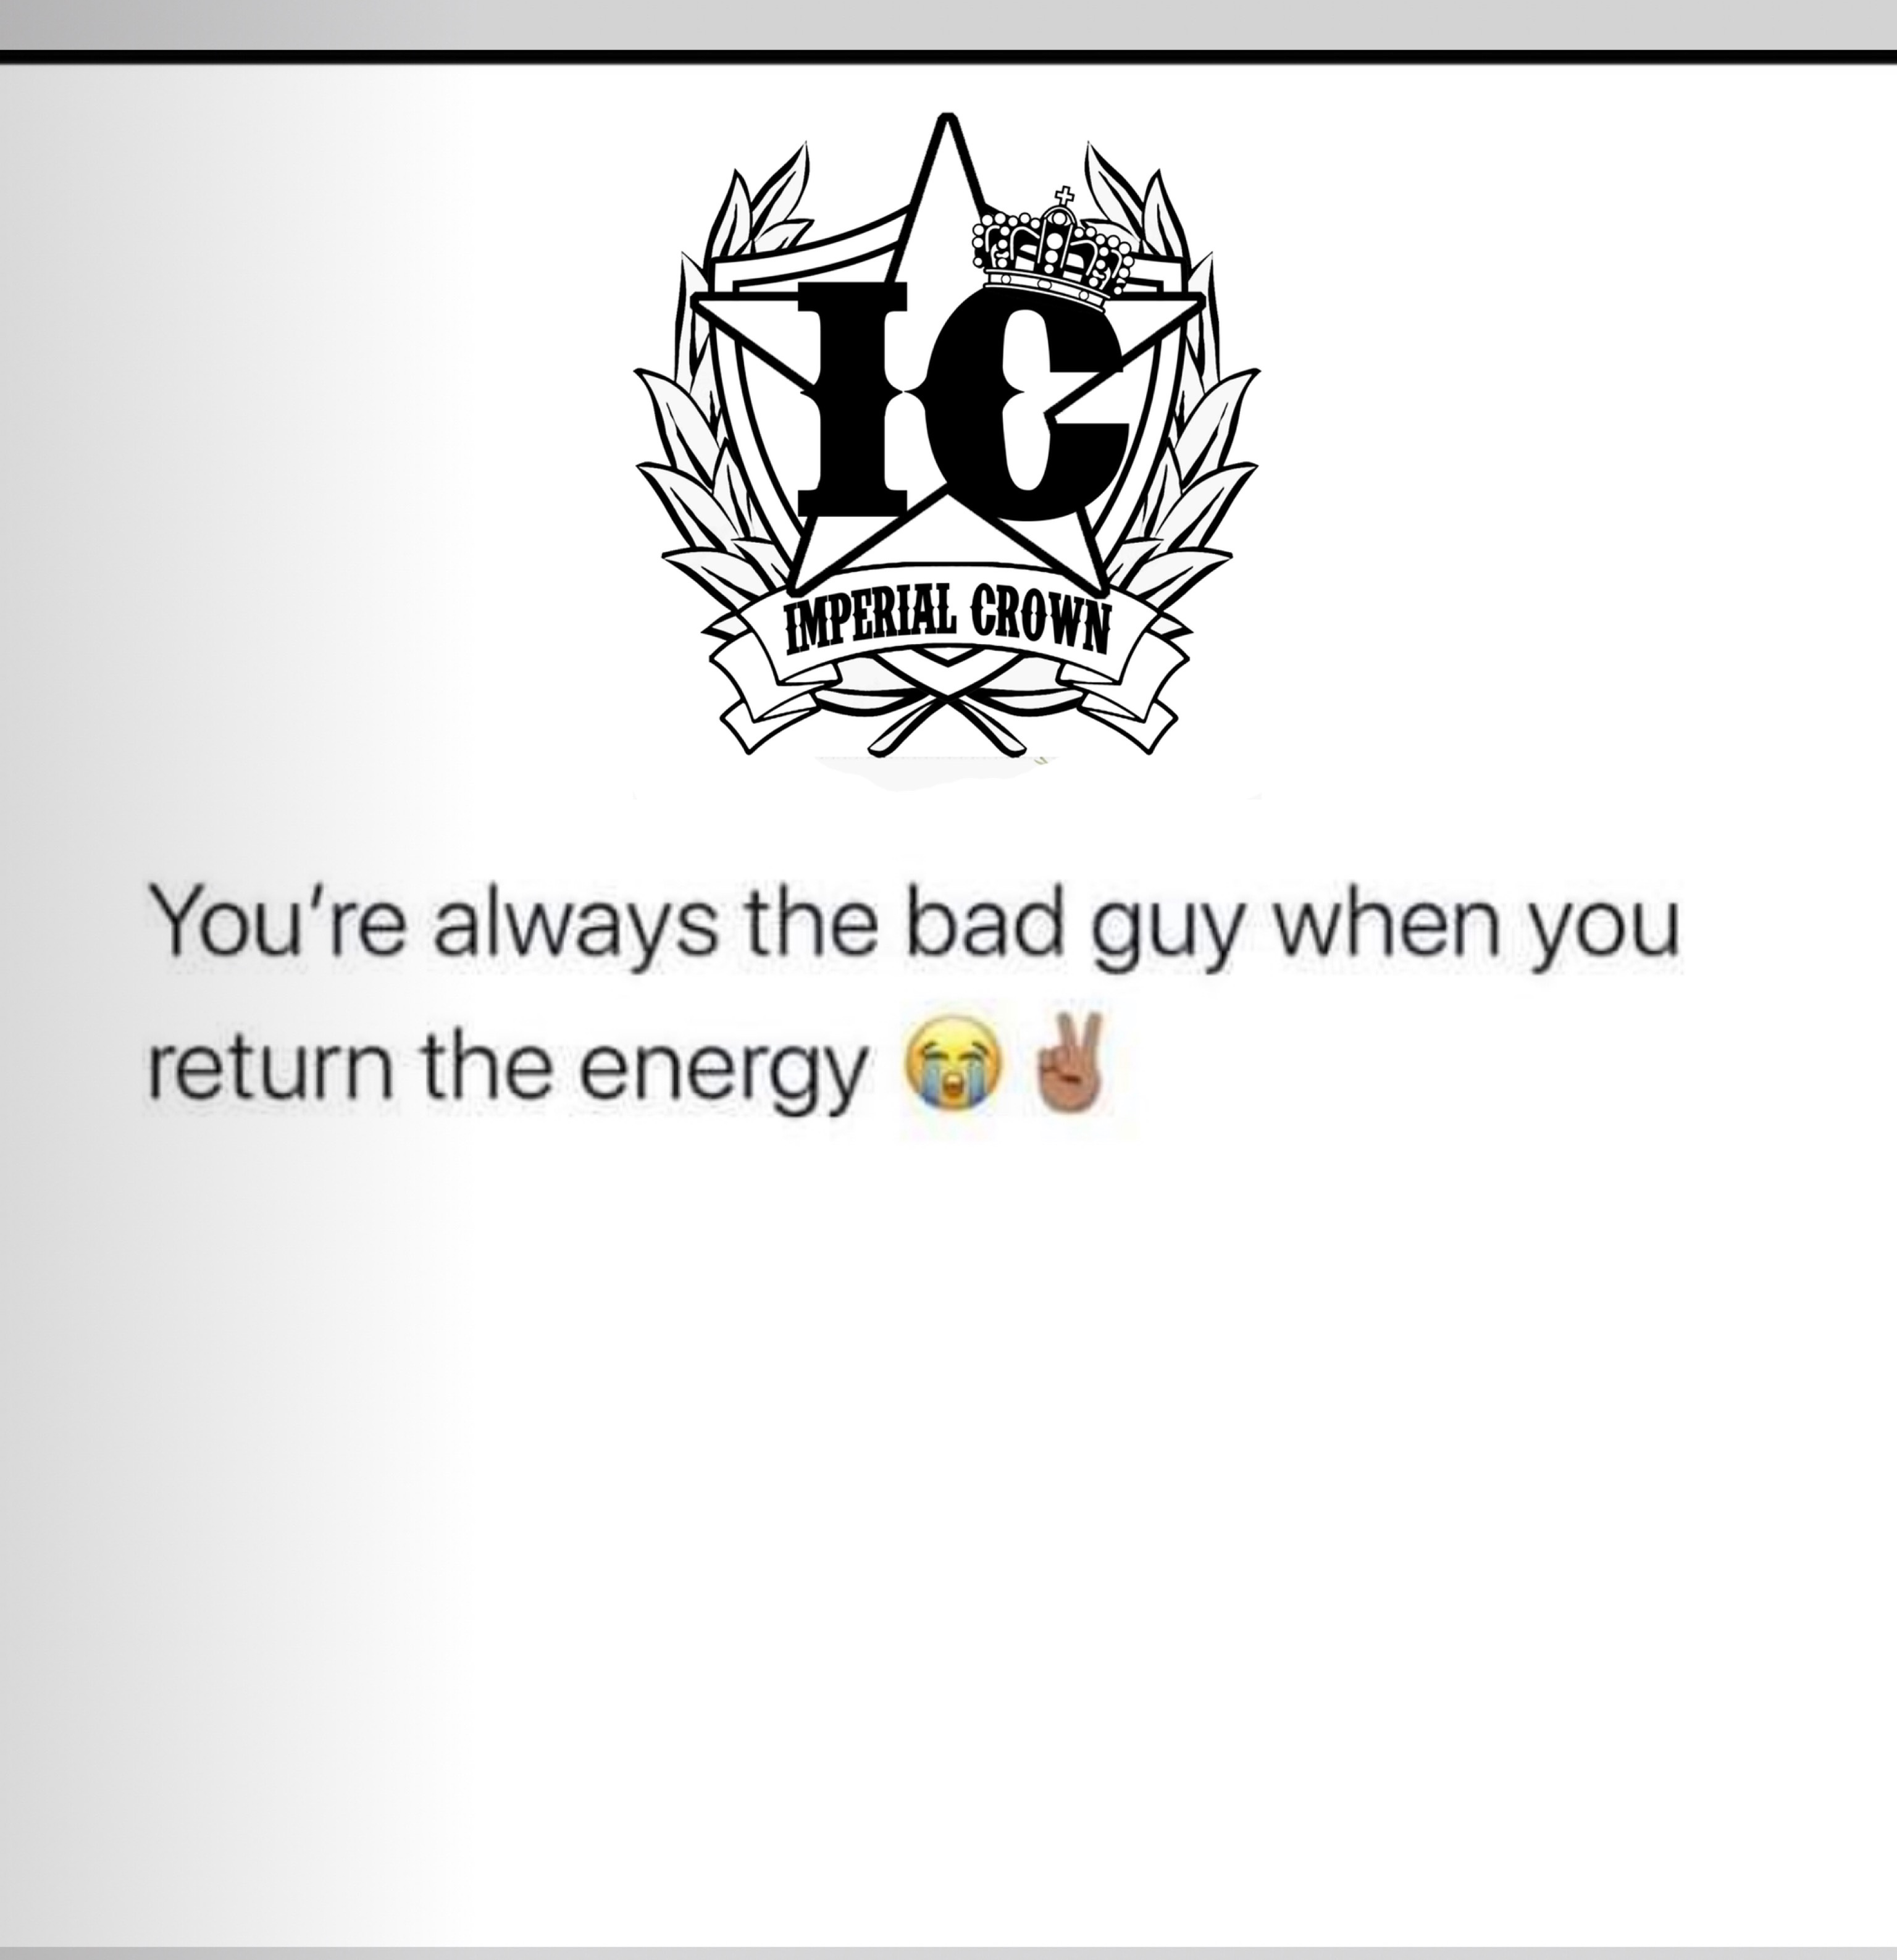 You're always the bad guy when you return the energy